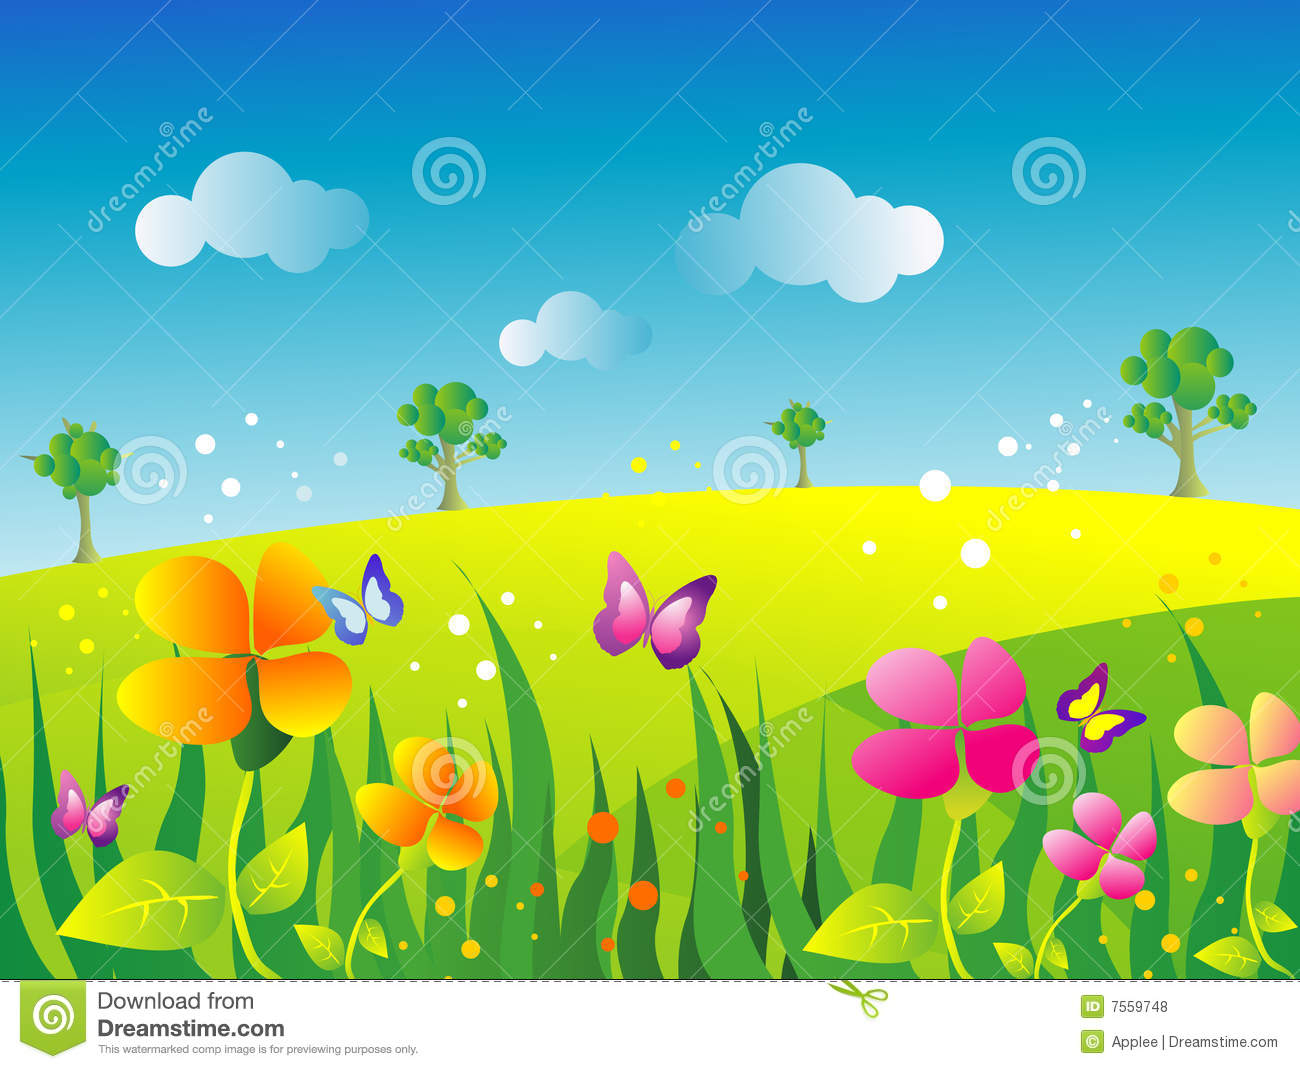 garden illustration royalty free stock photos image 7559748 clip art of spring flowers with watering can clip art of spring flowers with frogs